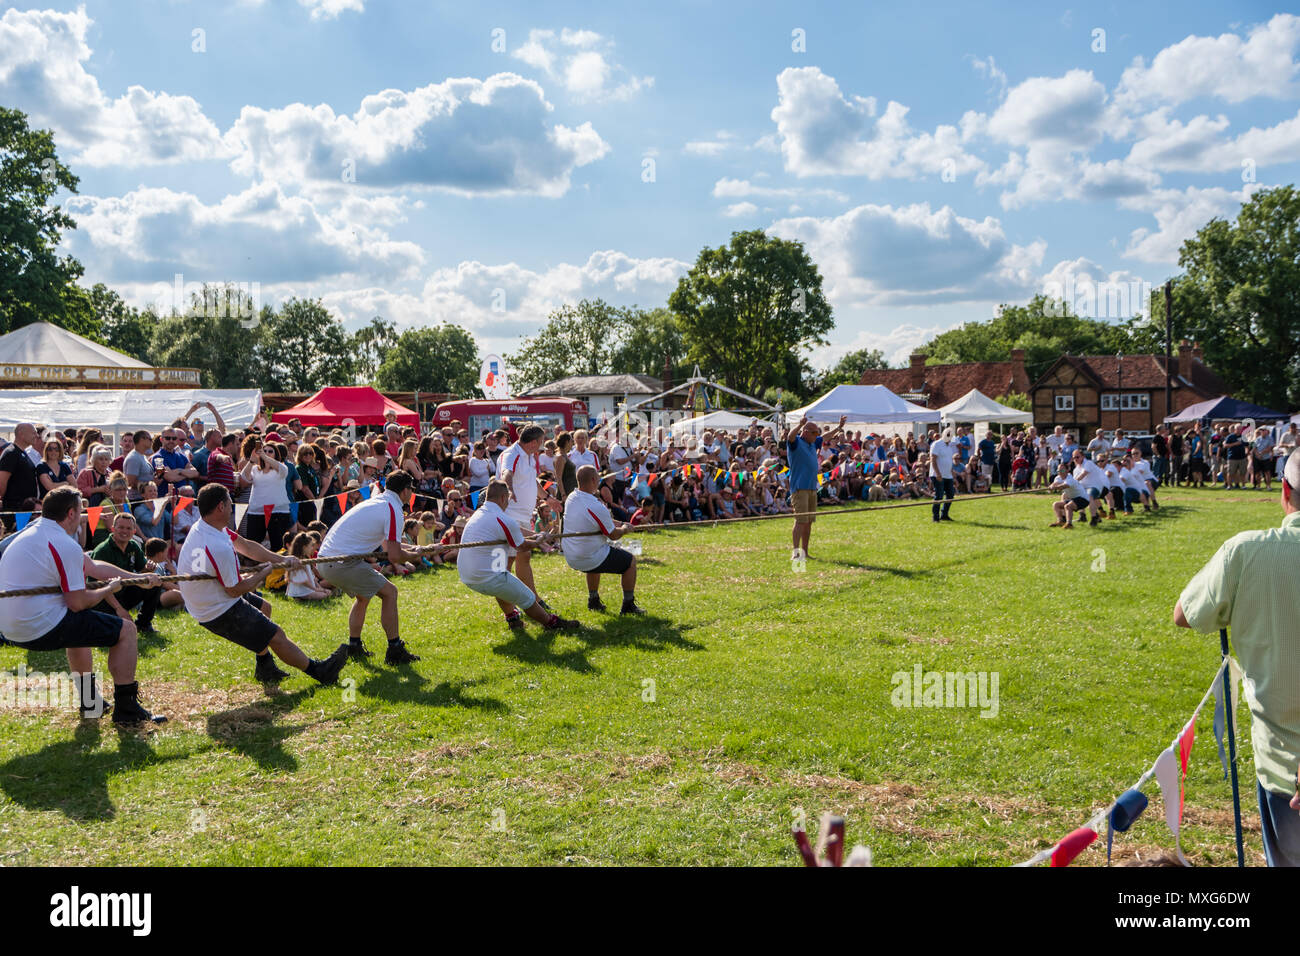 Two teams compete in a Tug of War - Stock Image